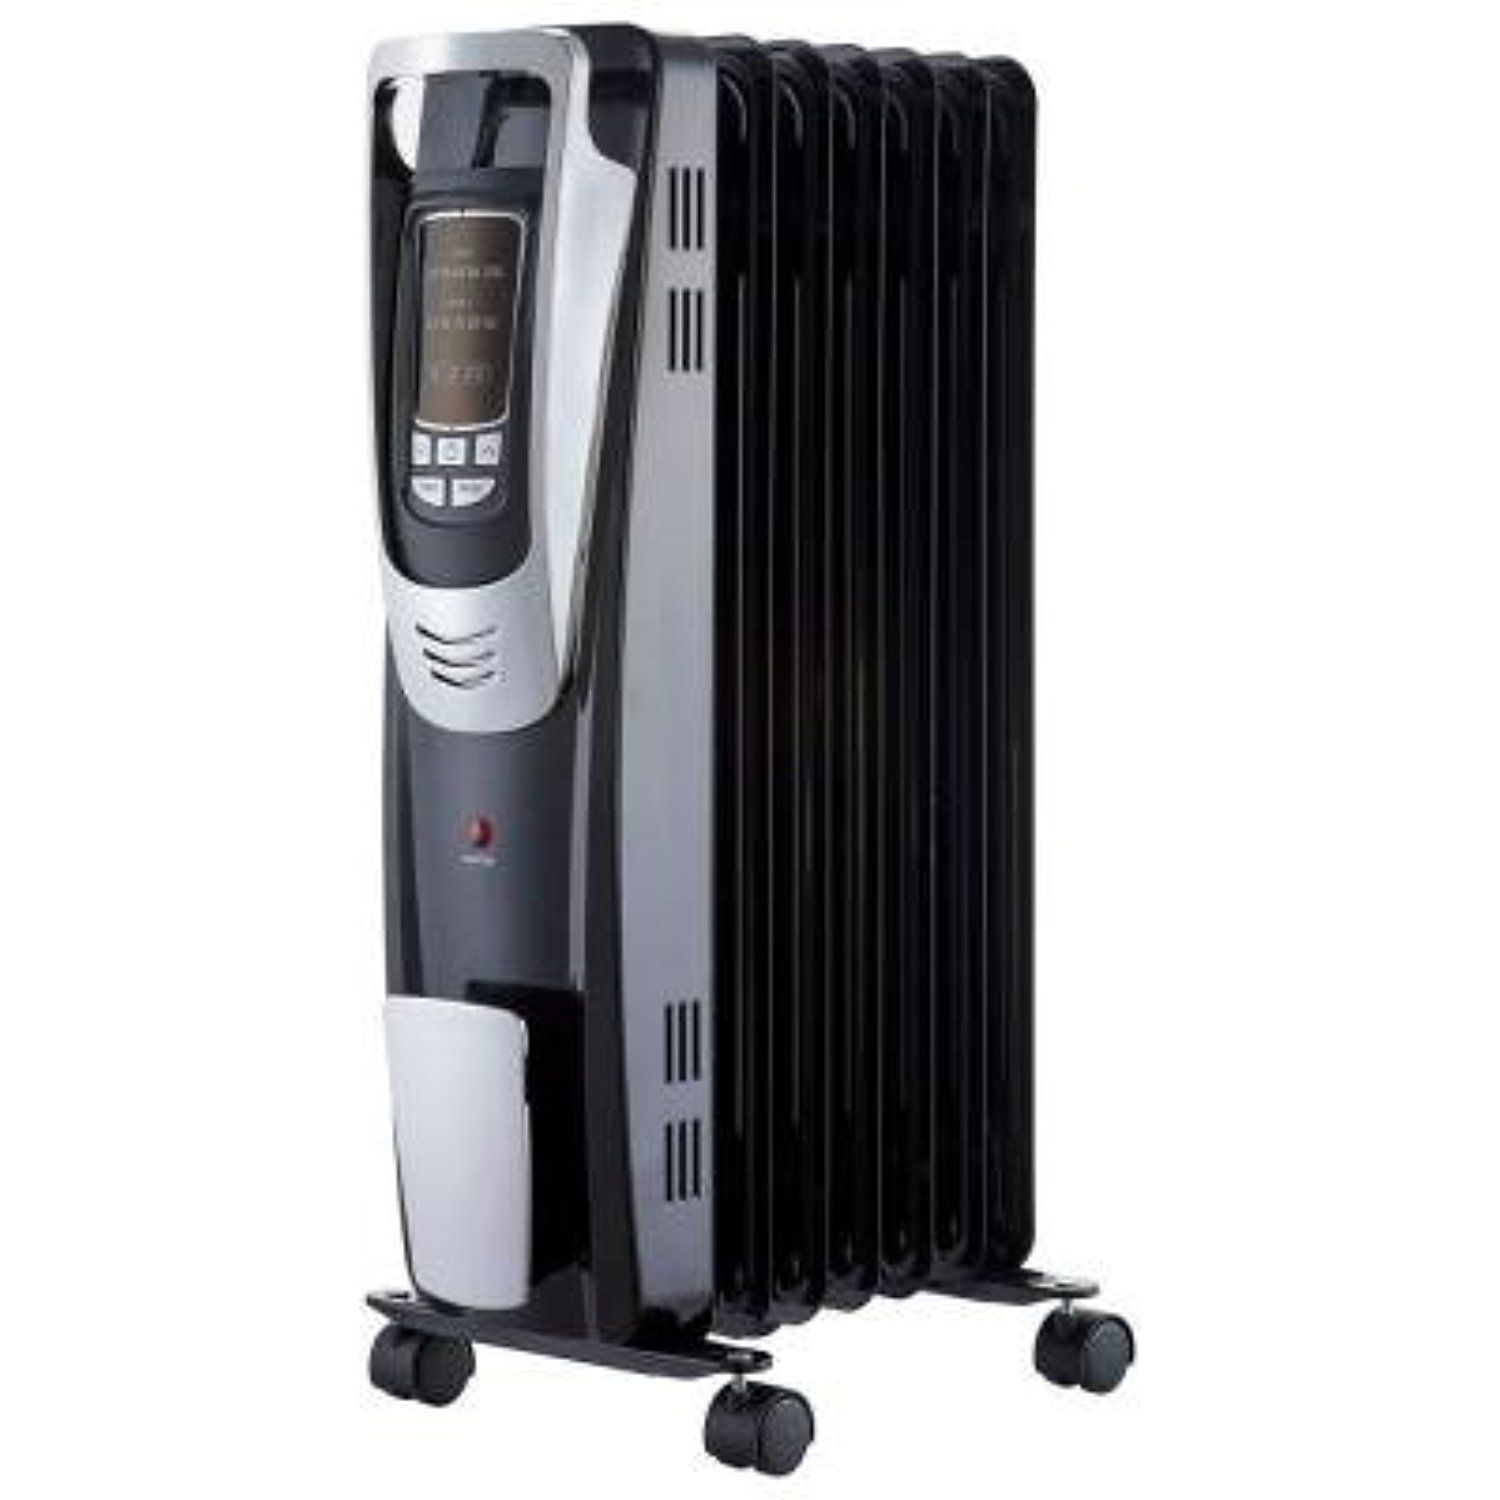 1500 Watt Digital Oil Filled Radiant Portable Heater With Remote Control Awesome Products Selected By Anna Churchi Portable Heater Radiator Heater Radiators